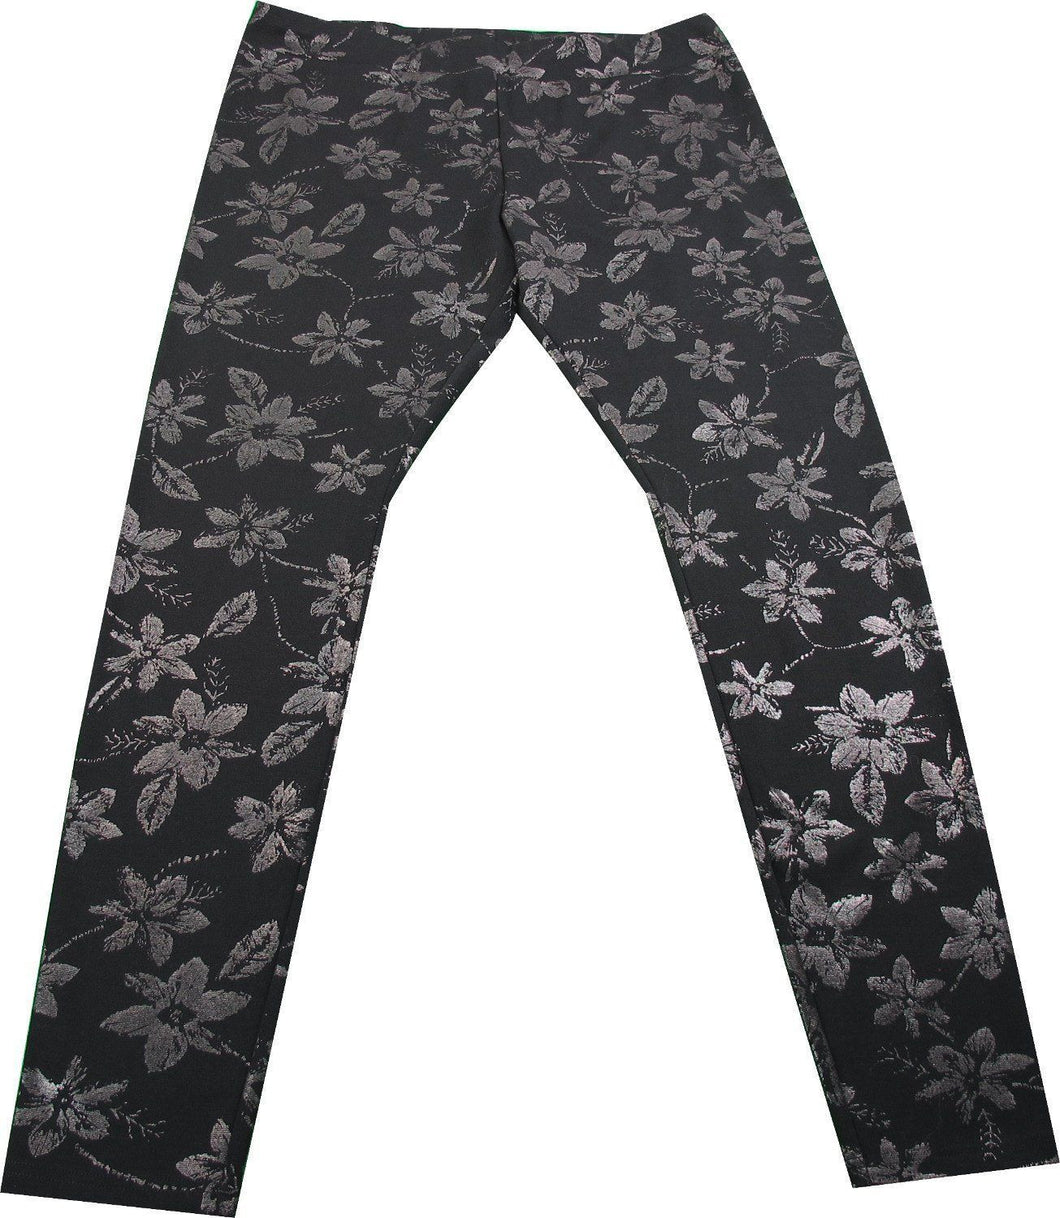 June & Daisy Ladies Size Small Ponte Ankle Length Leggings, Shimmer Floral